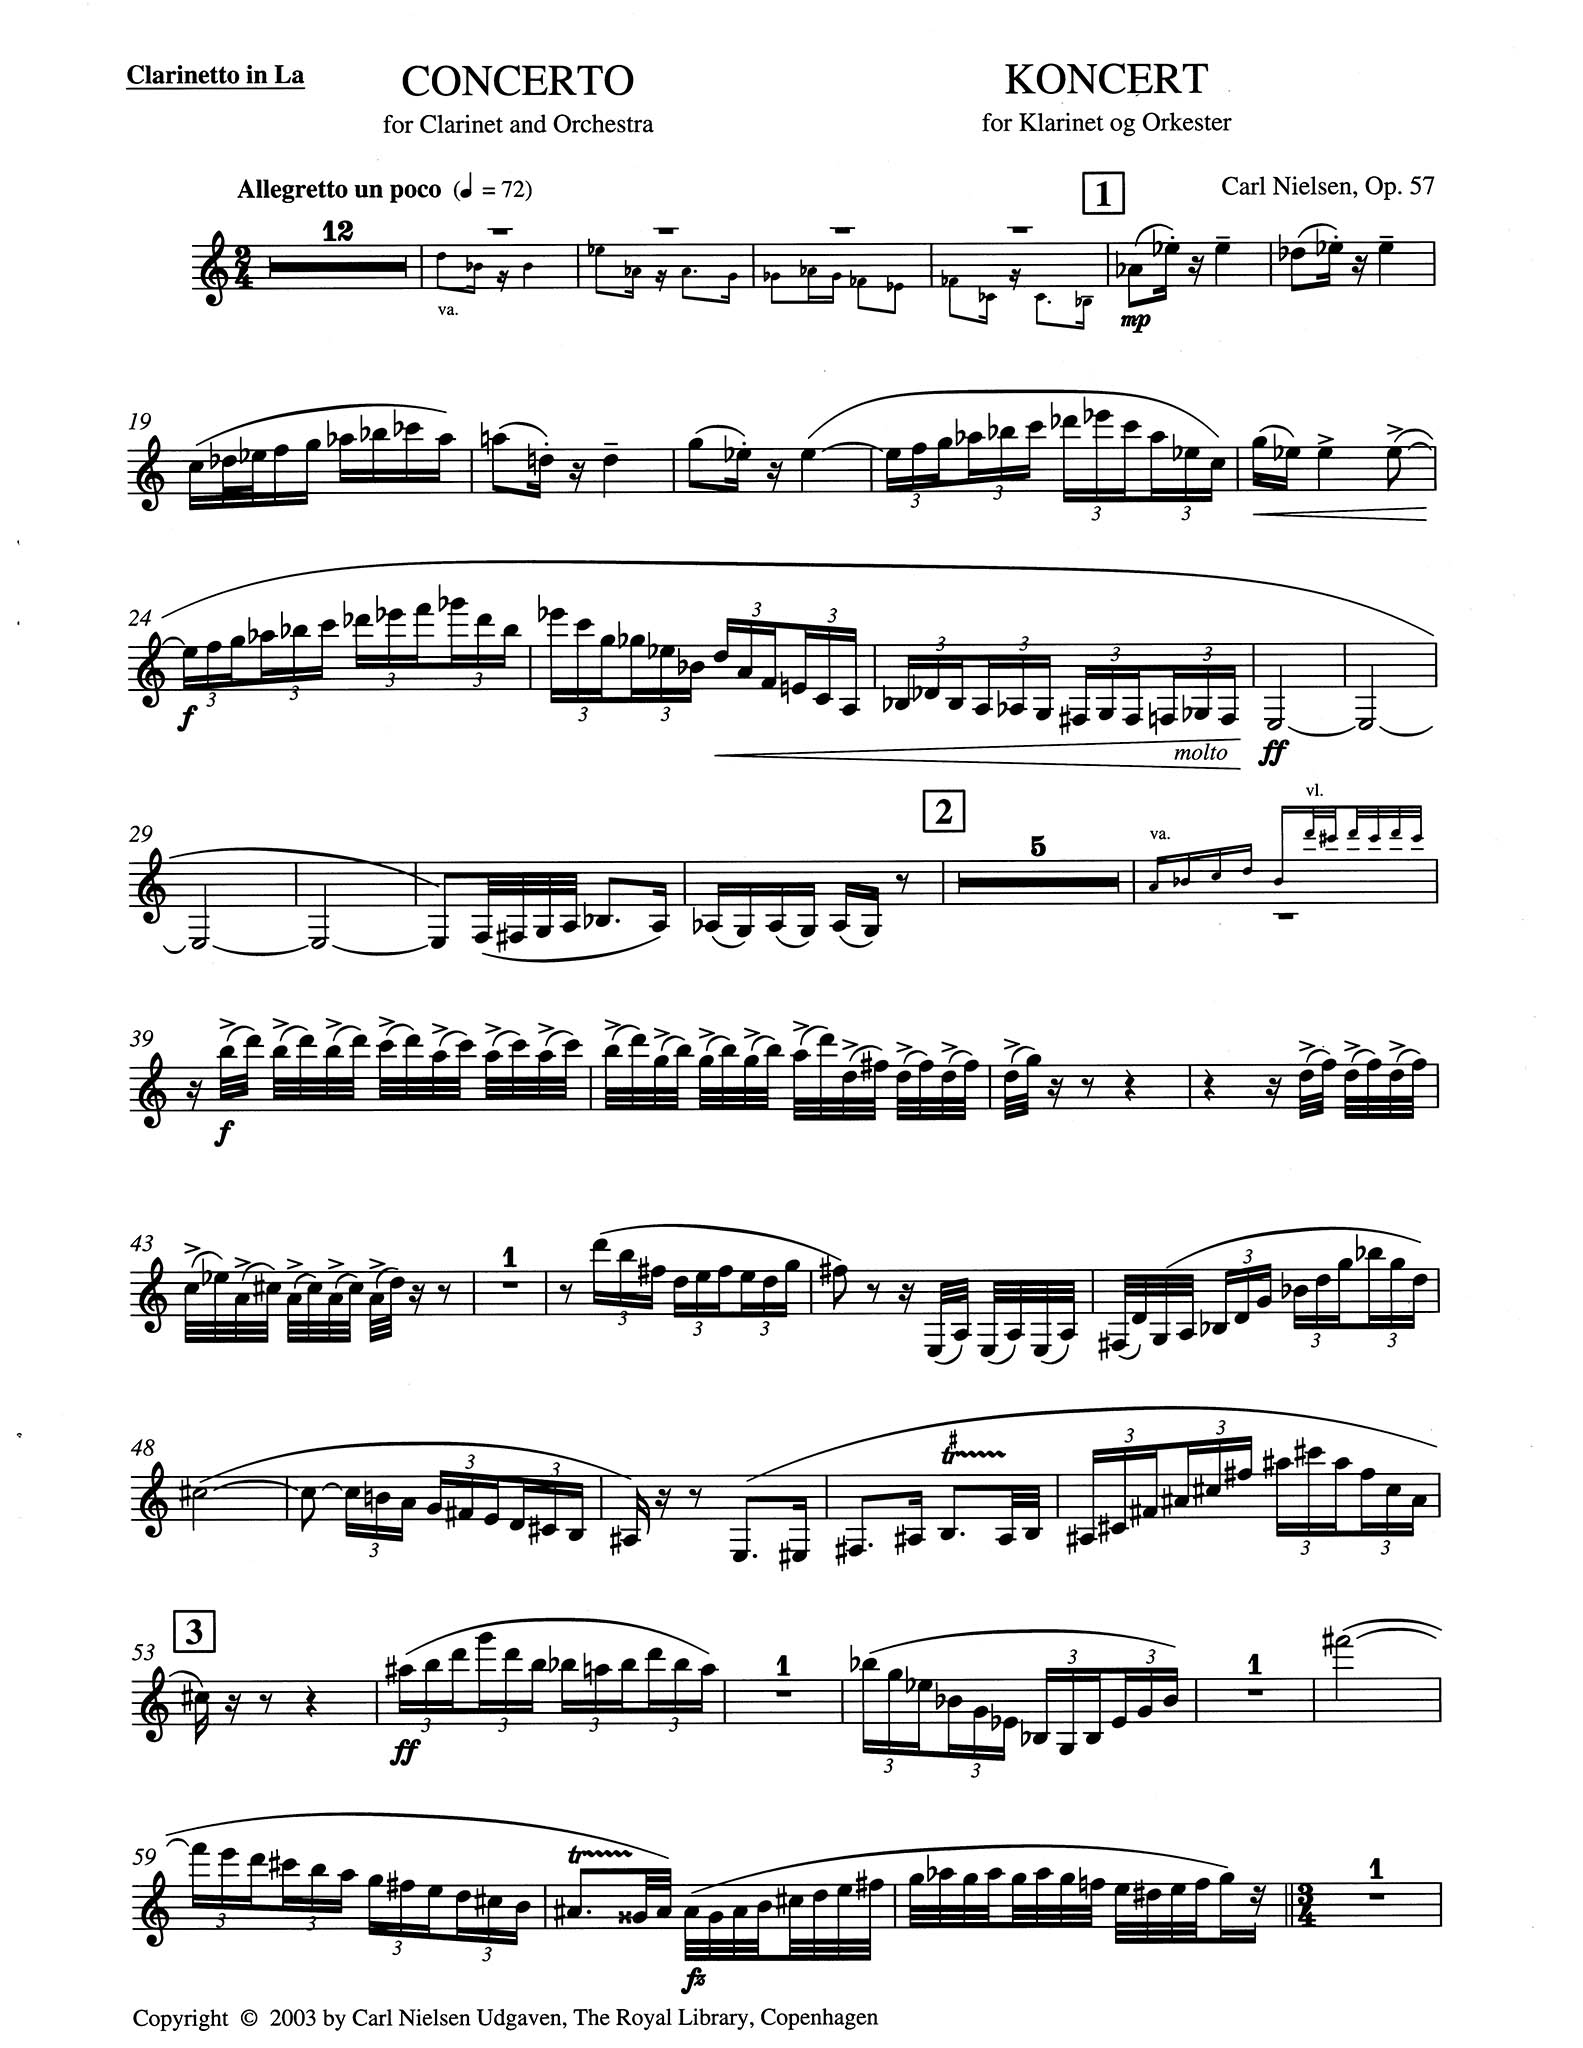 Clarinet Concerto, Op. 57 (CNW 43) Clarinet part